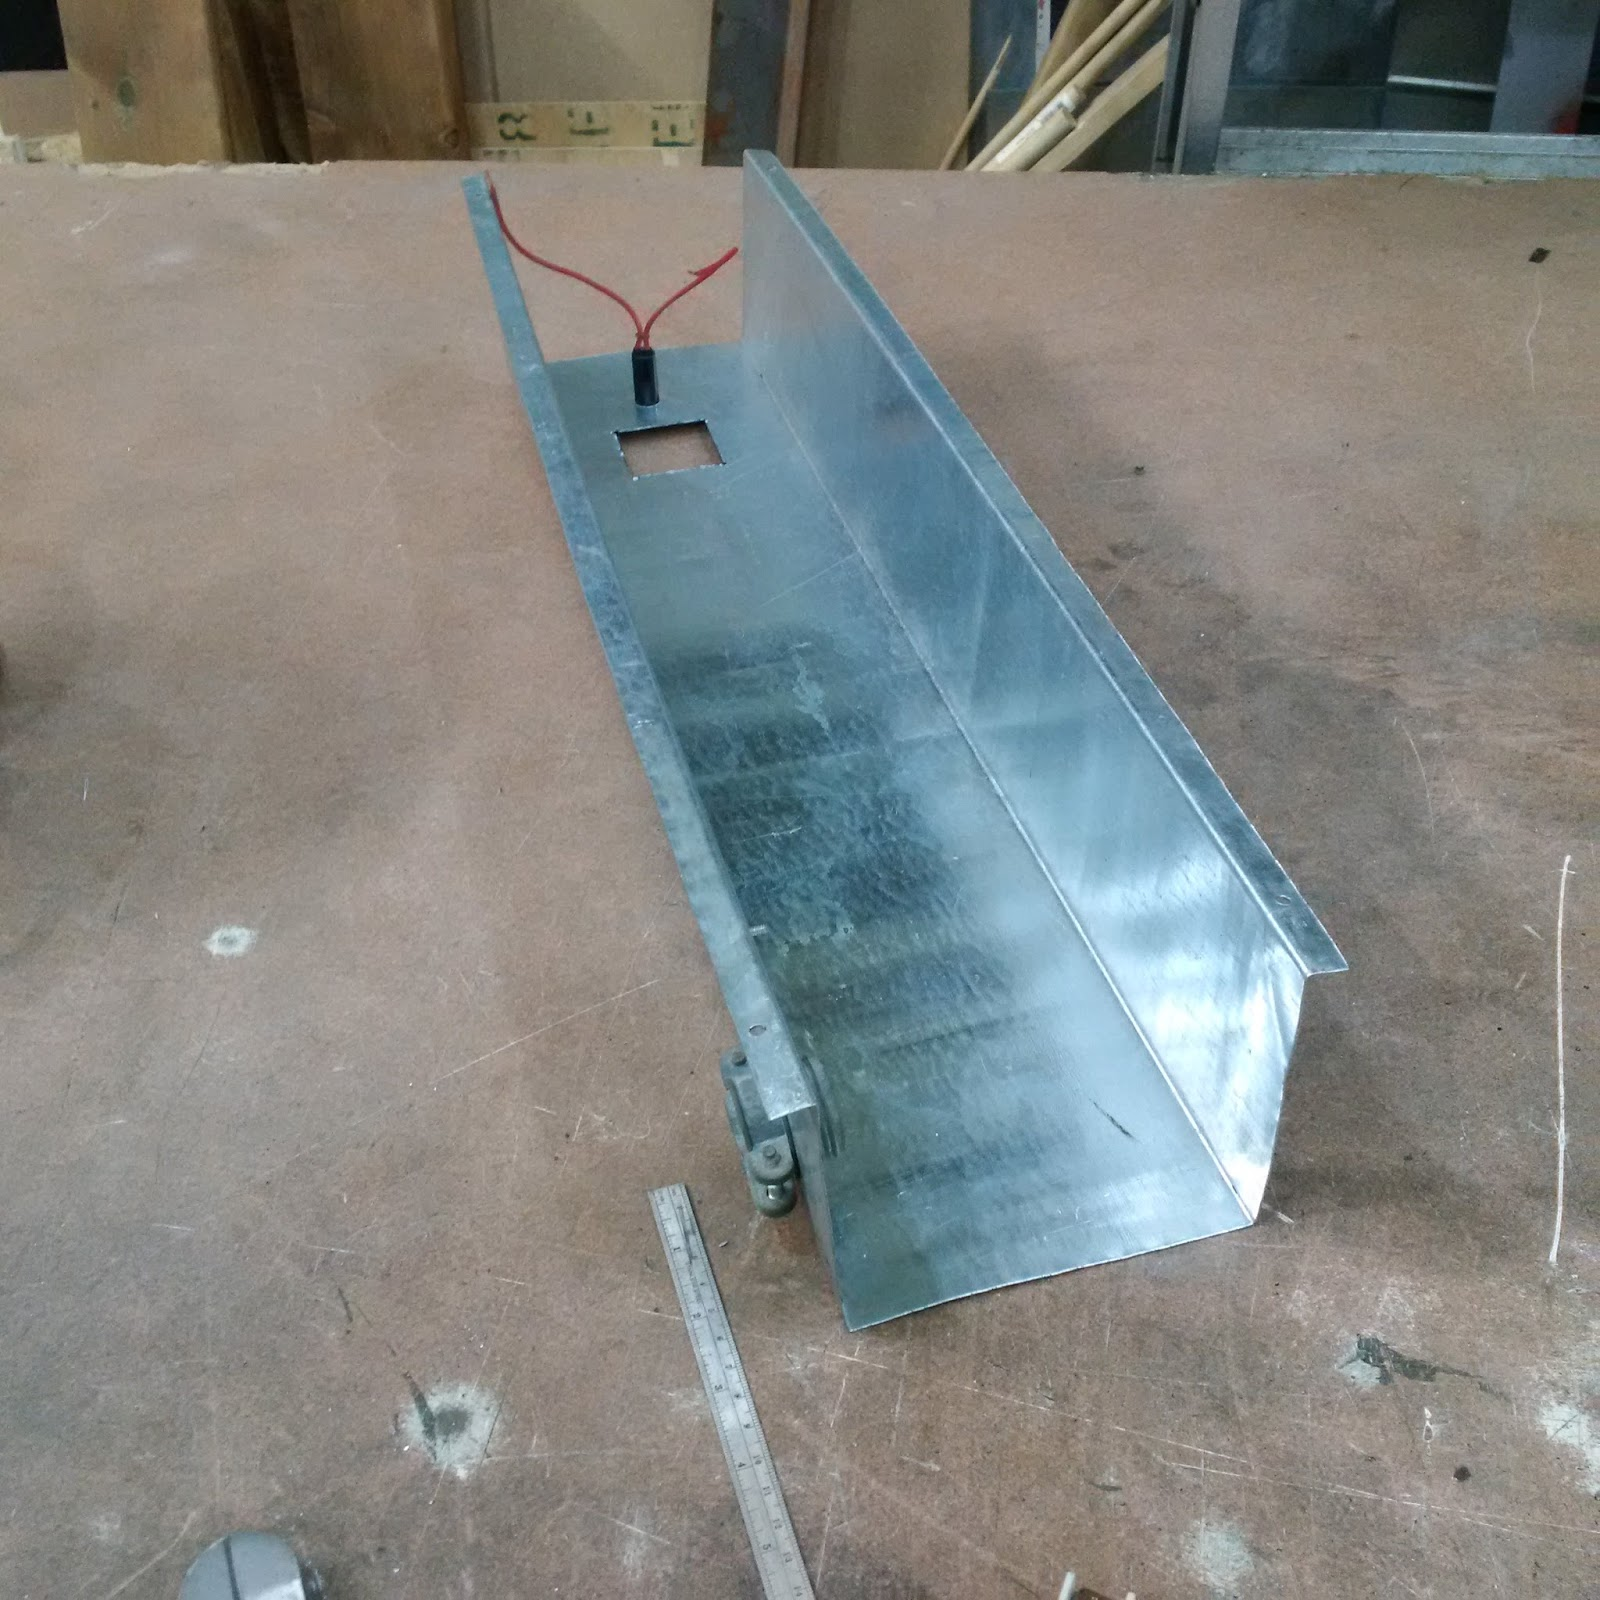 Another Day Another Project: DIY Sheet Metal Brake